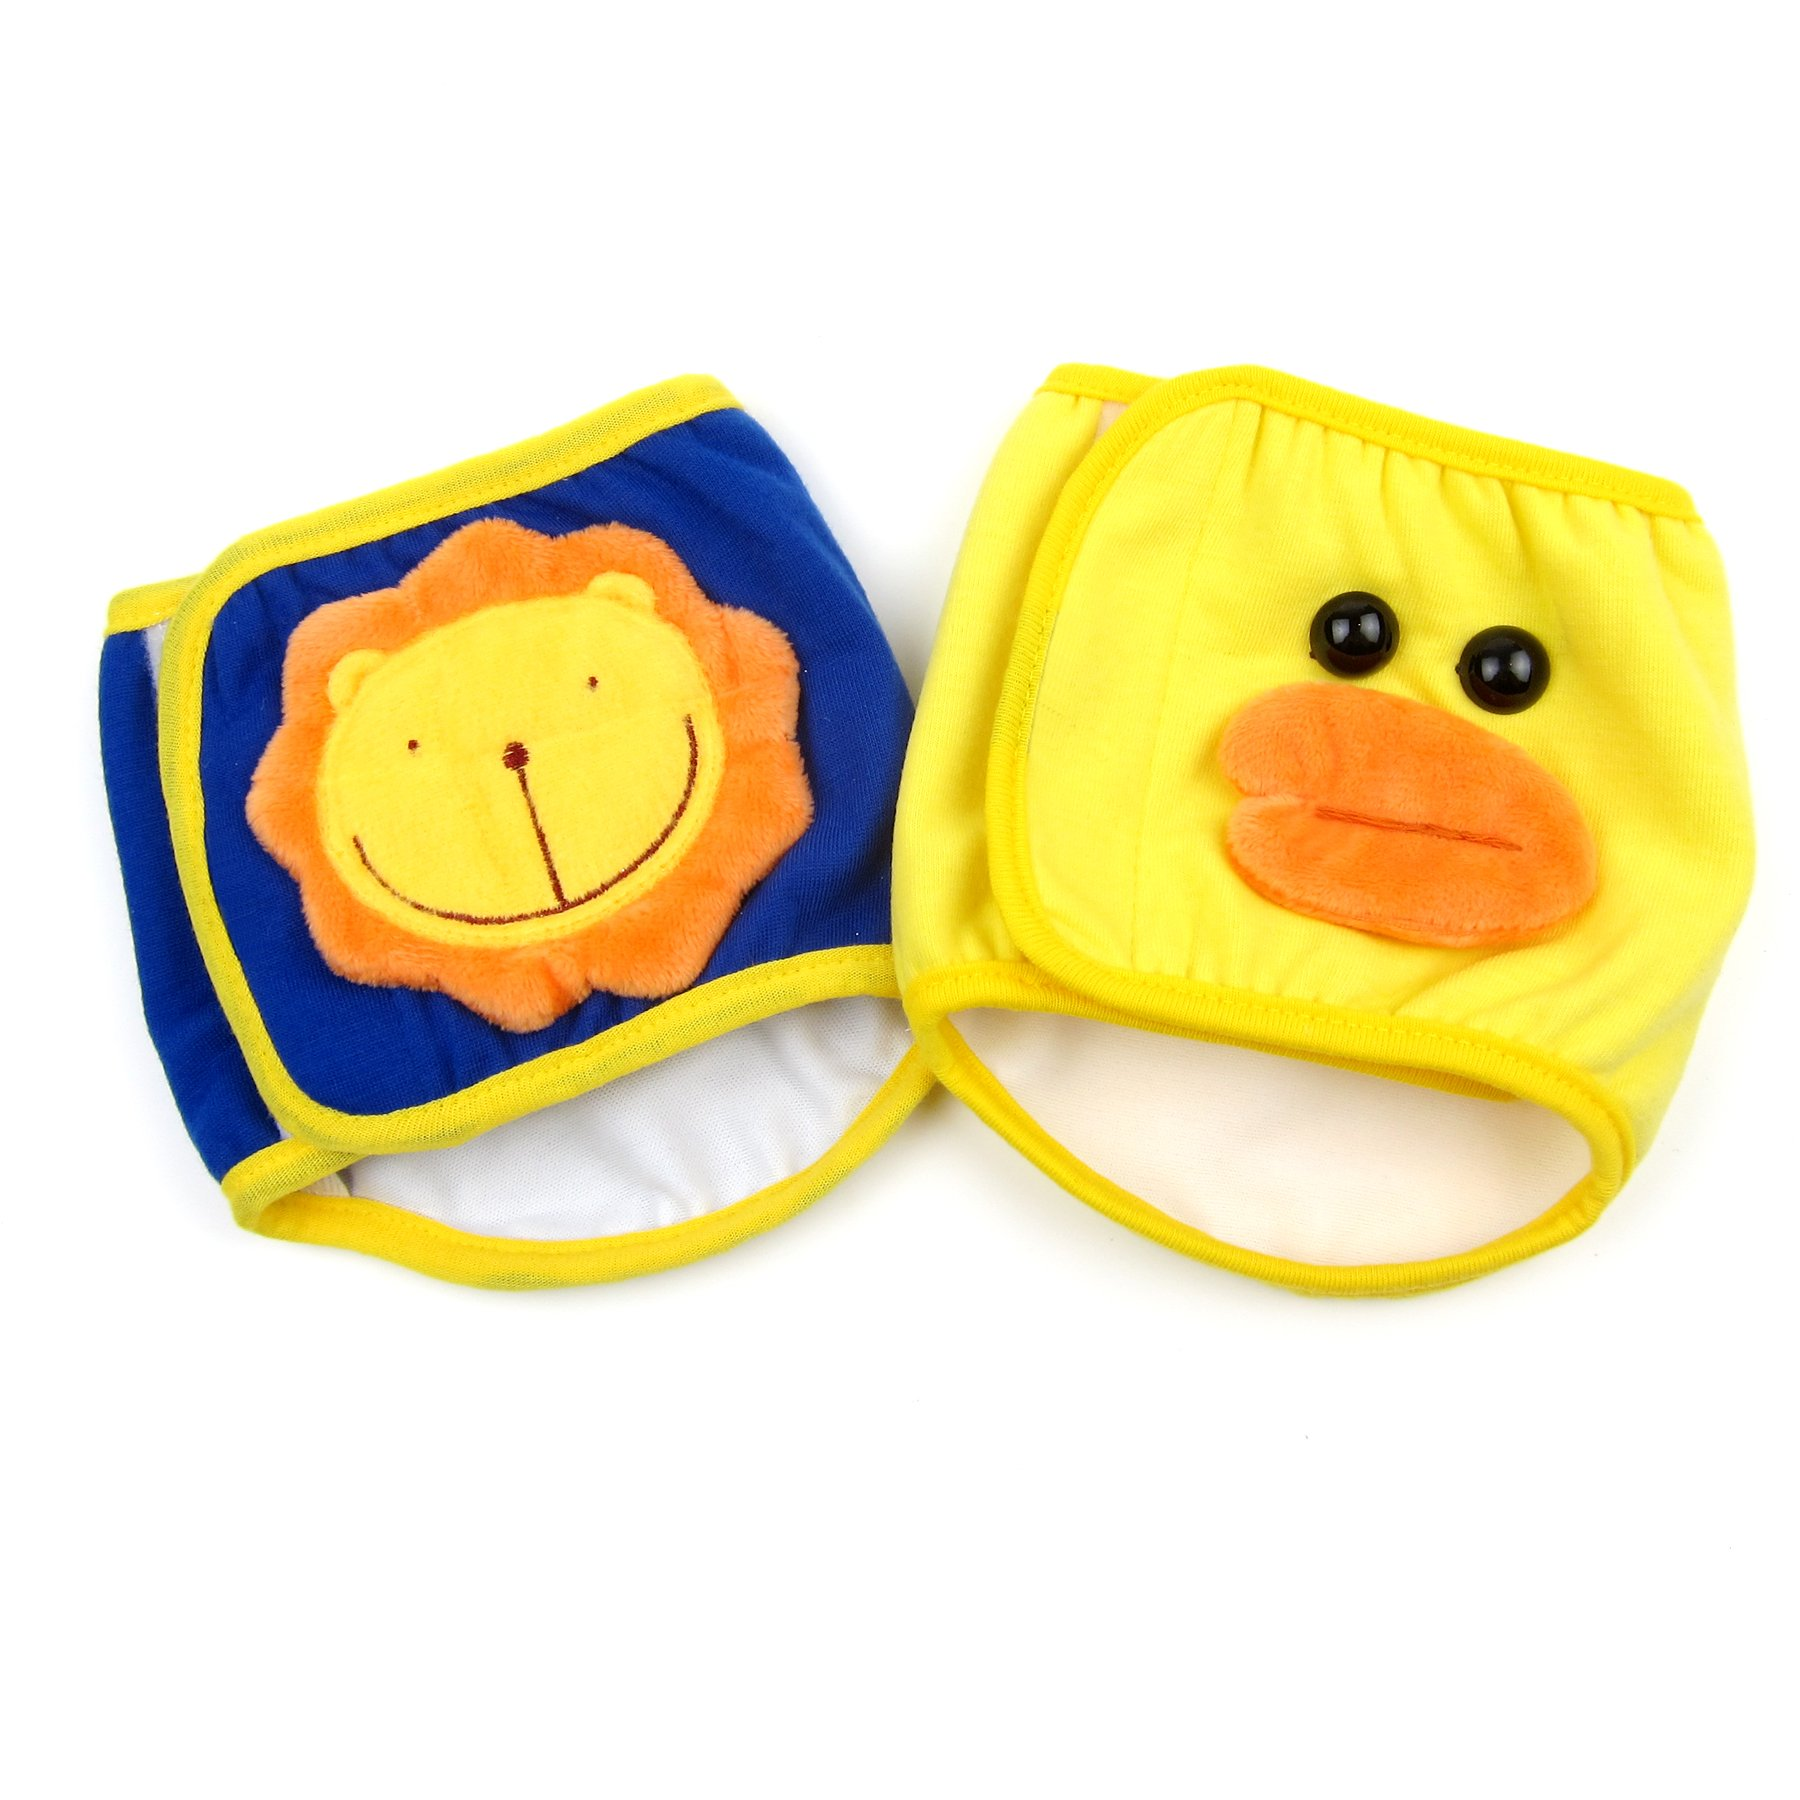 Alfie Pet by Petoga Couture - Rafael Belly Band 2-Piece Set (for Boy Dogs) - Color: Navy Yellow, Size: Large by Alfie (Image #4)